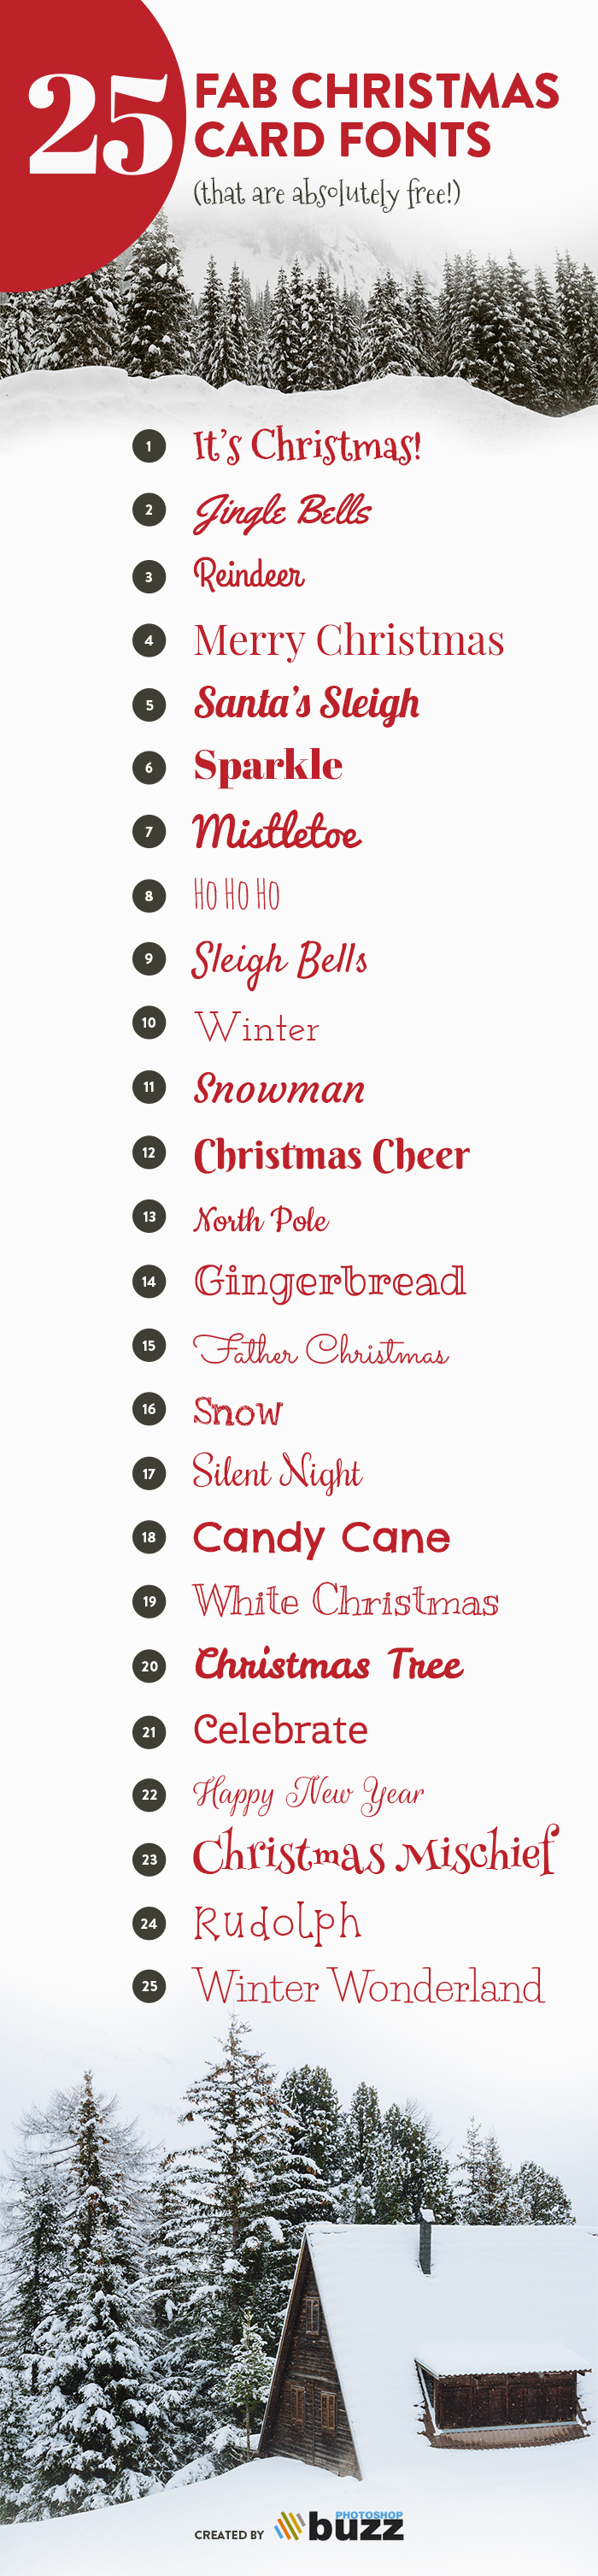 25 Christmas card fonts